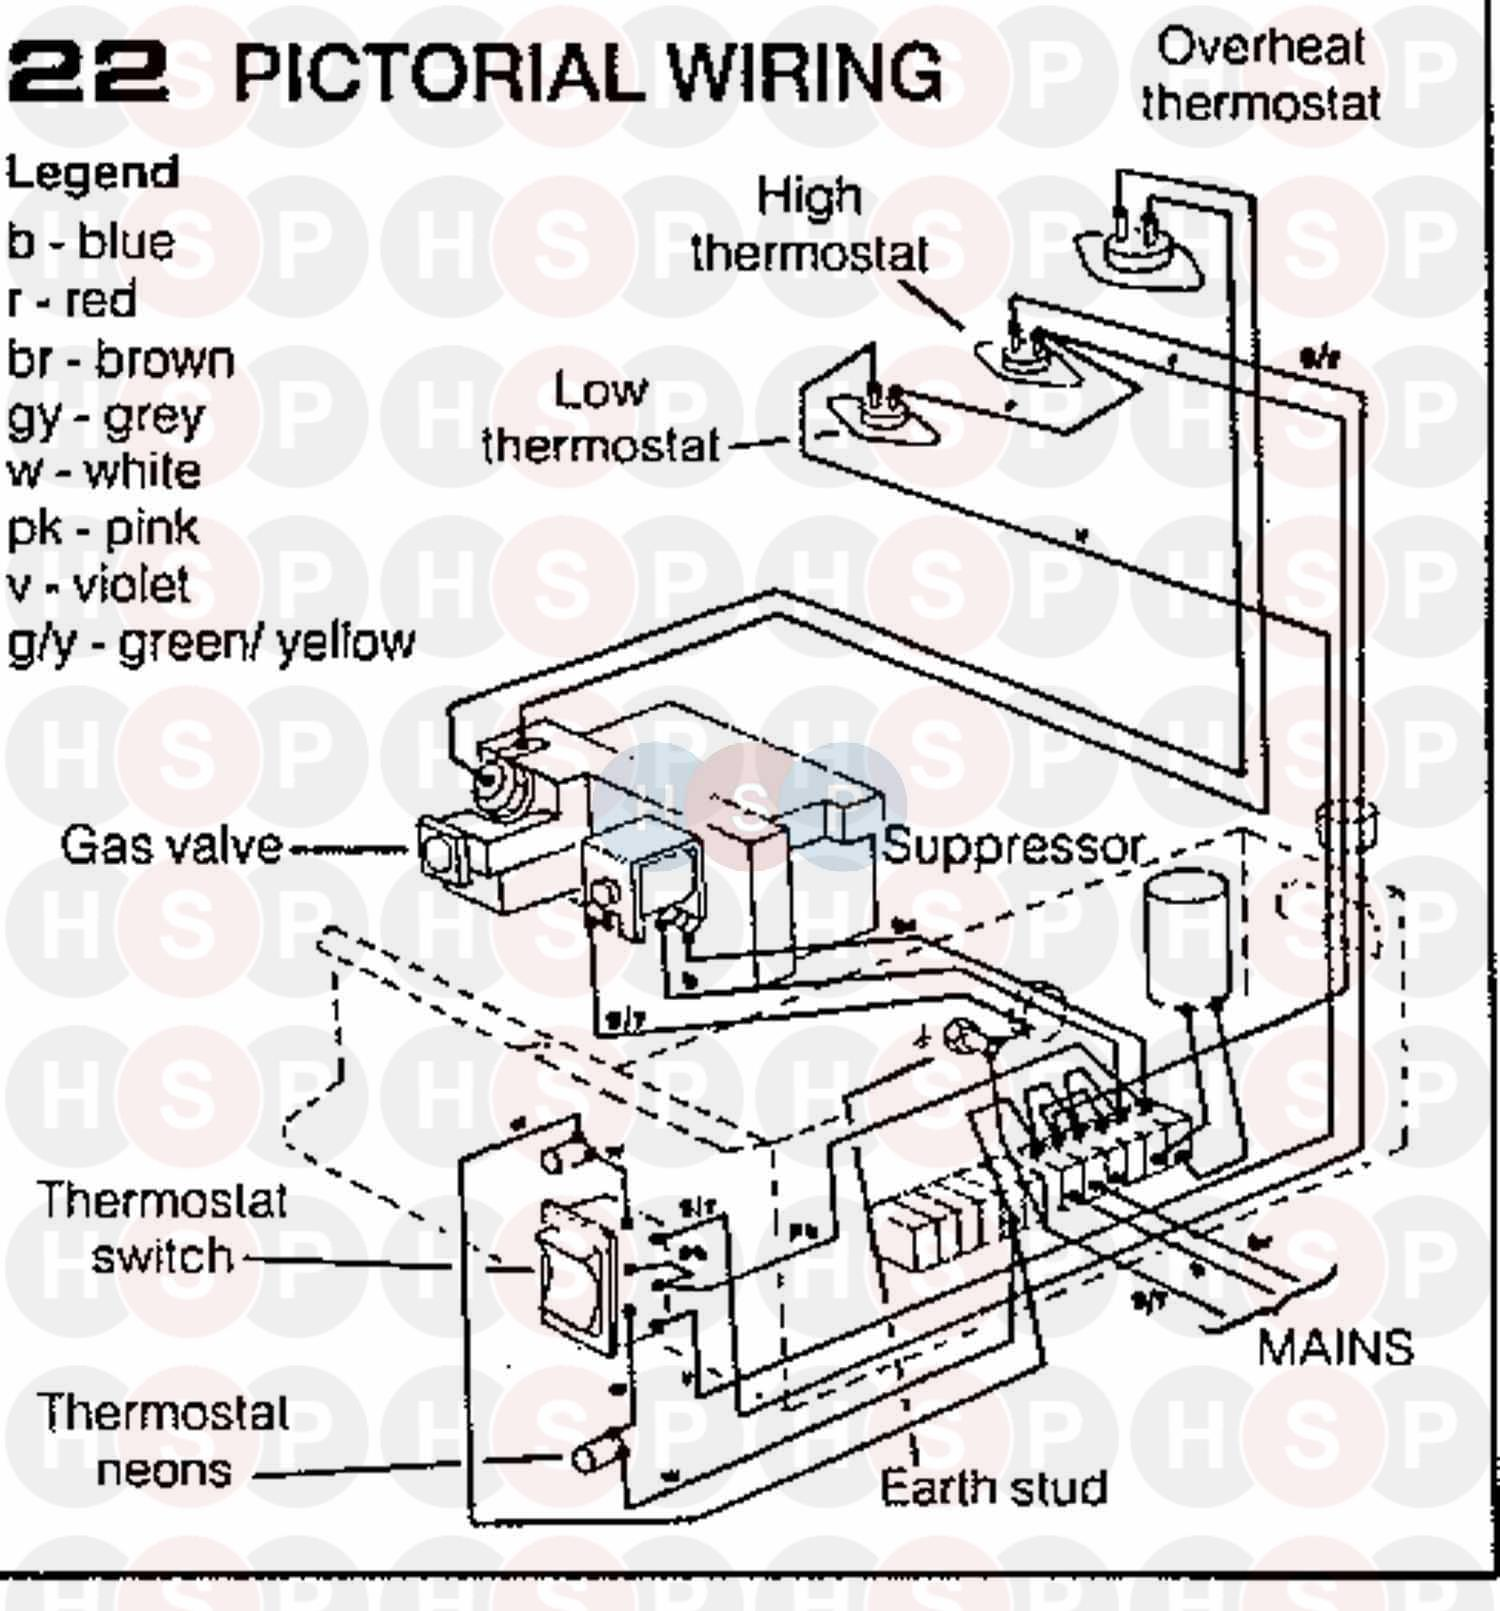 Ideal Elan 2 Cf 50 Wiring Diagram 4 Heating Spare Parts Diagrams Click The To Open It On A New Page